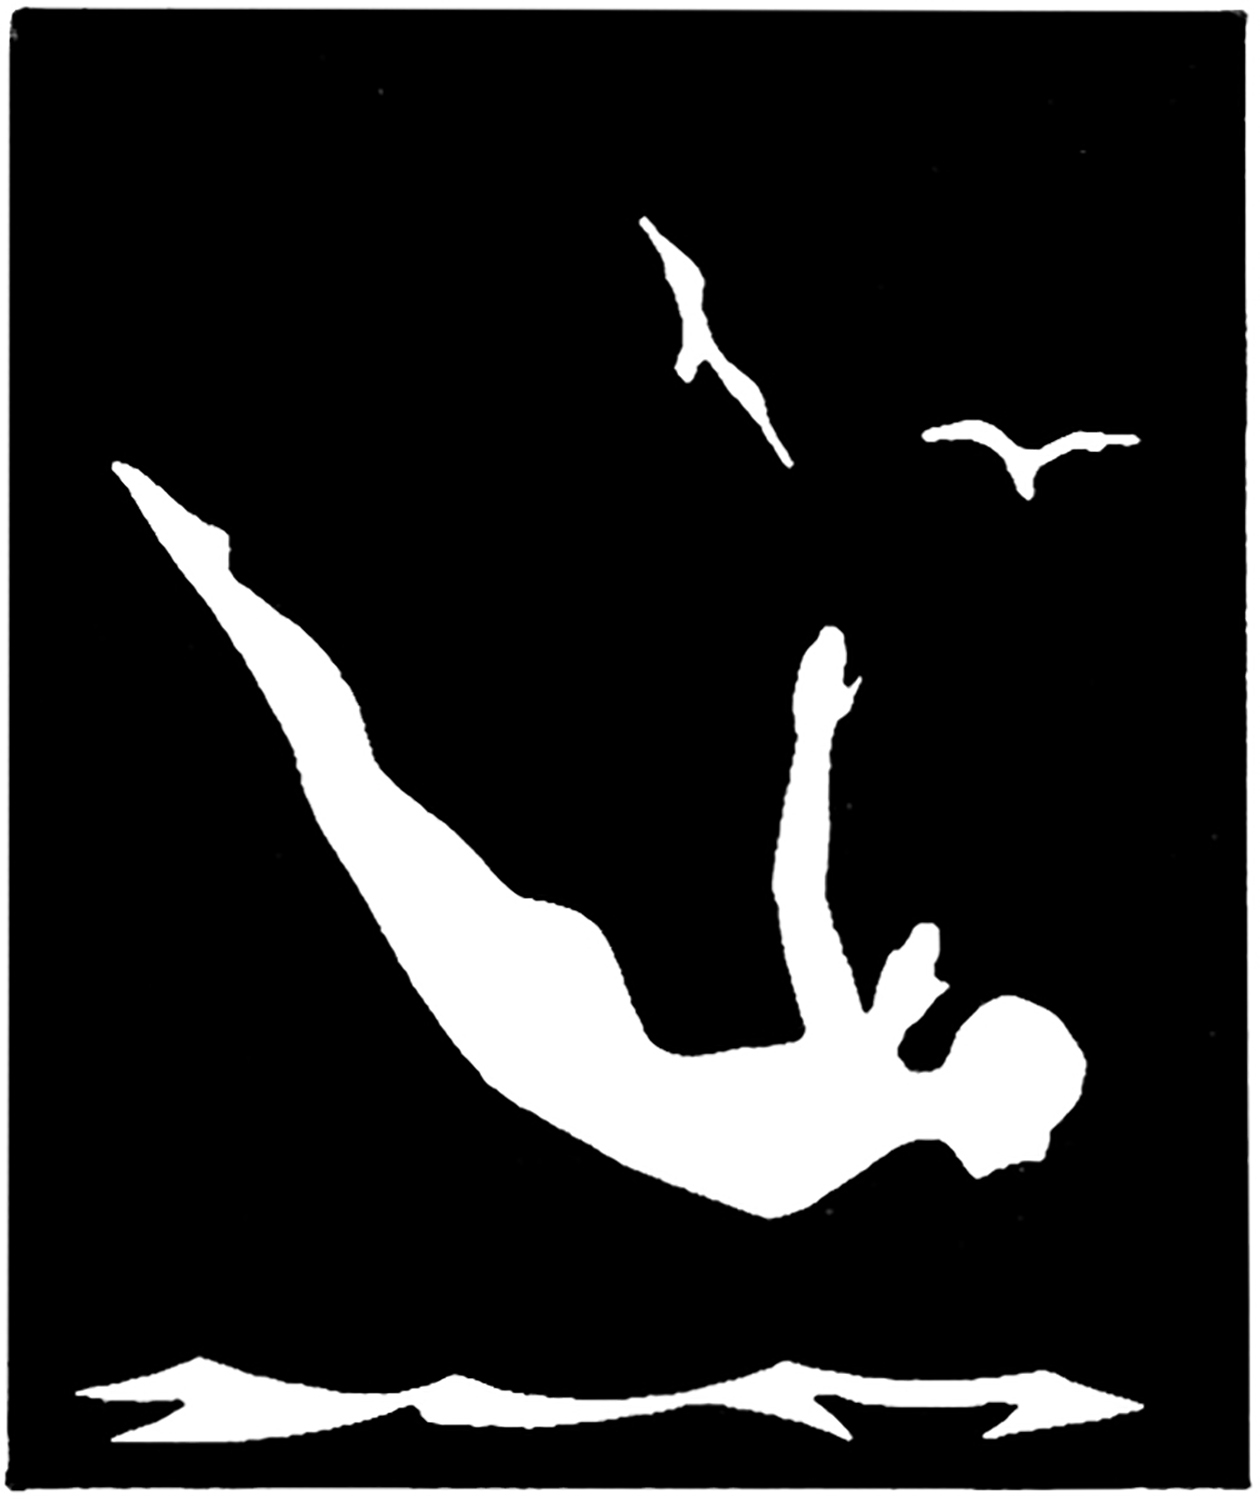 Vintage Diving Silhouette Image